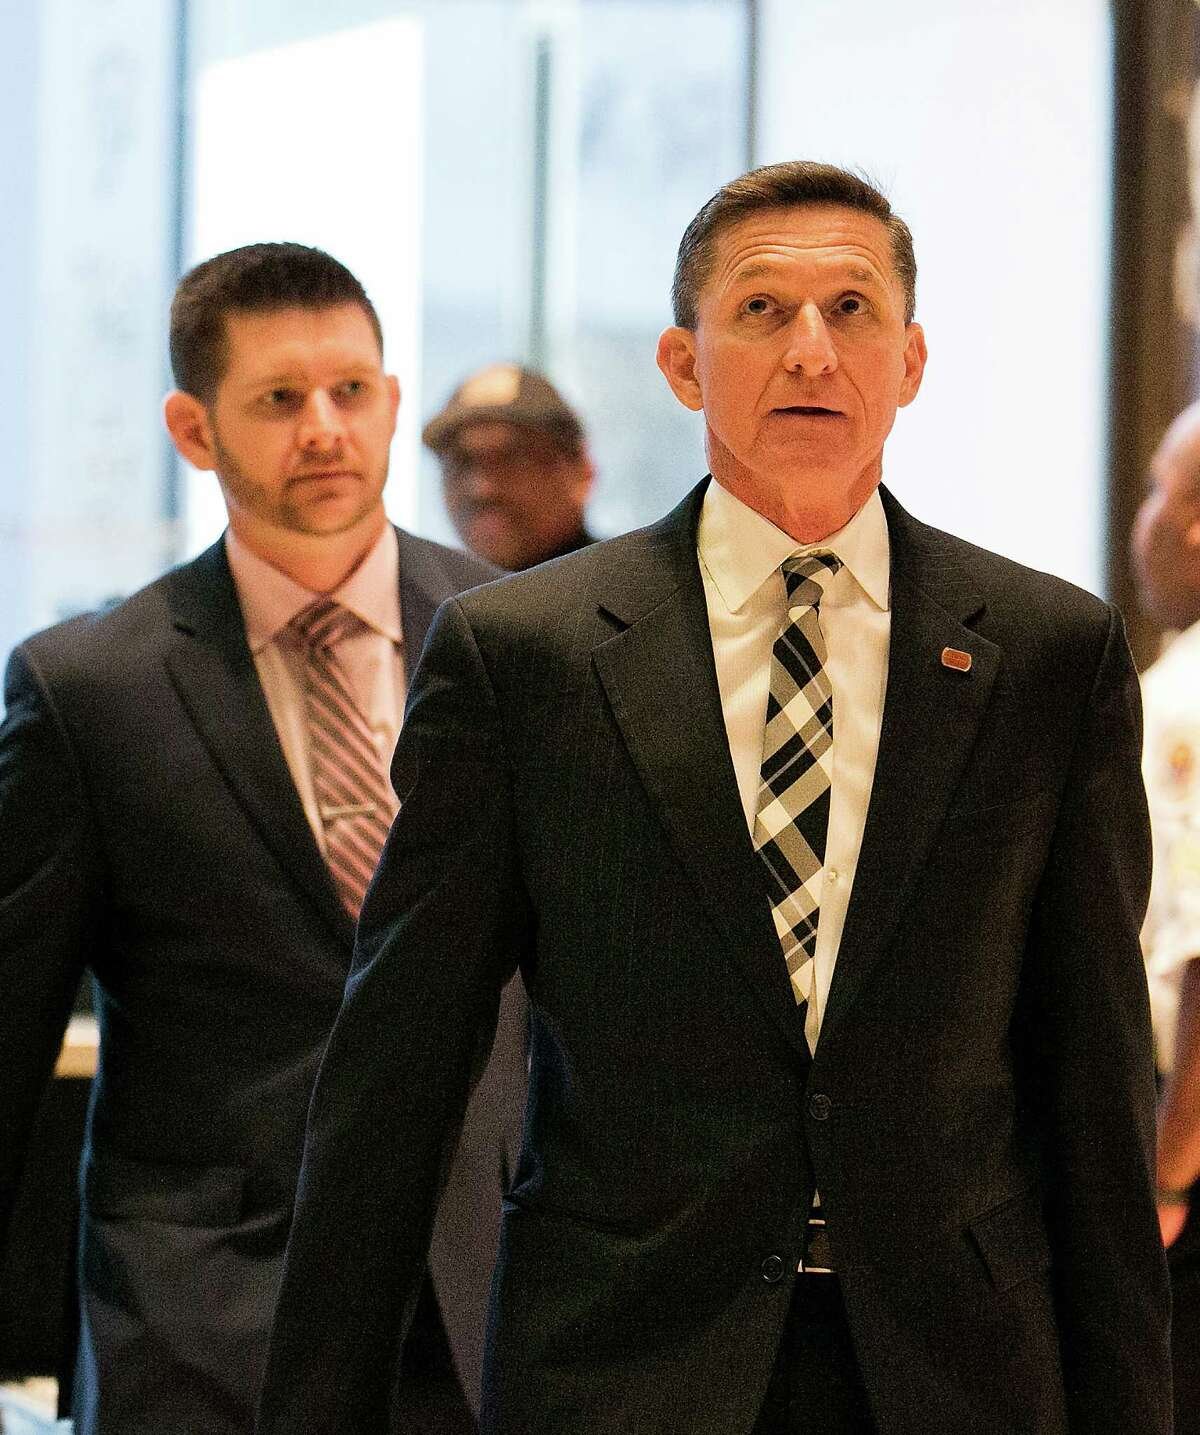 Retired Army Lt. Gen. Michael Flynn, foreground, whom President-elect Donald Trump tapped to be his national security advisor, arrives at Trump Tower in New York for meetings on Nov. 17, 2016. Flynn is followed by his son, Michael Flynn Jr. (Sam Hodgson/The New York Times)